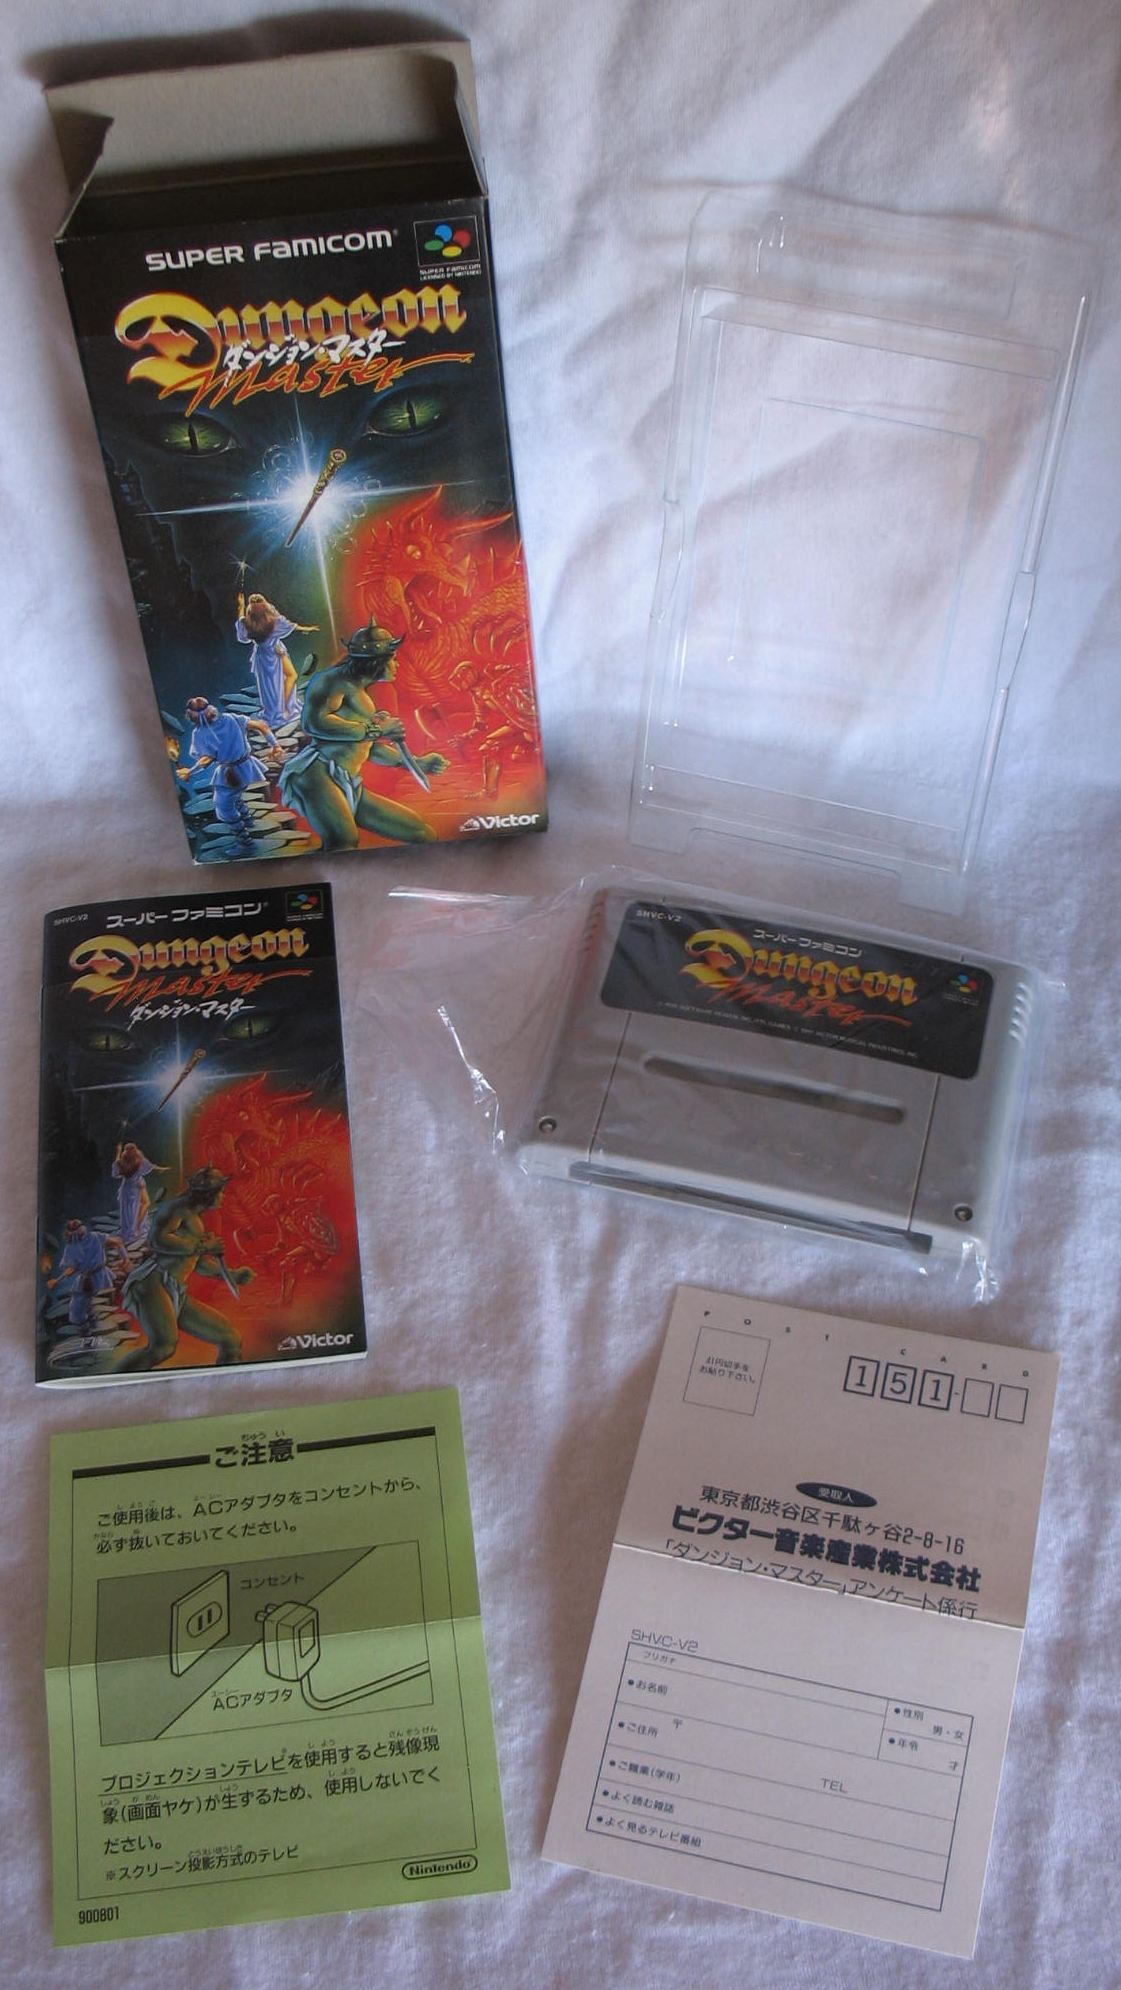 Game - Dungeon Master - JP - Super Famicom - All - Overview - Photo